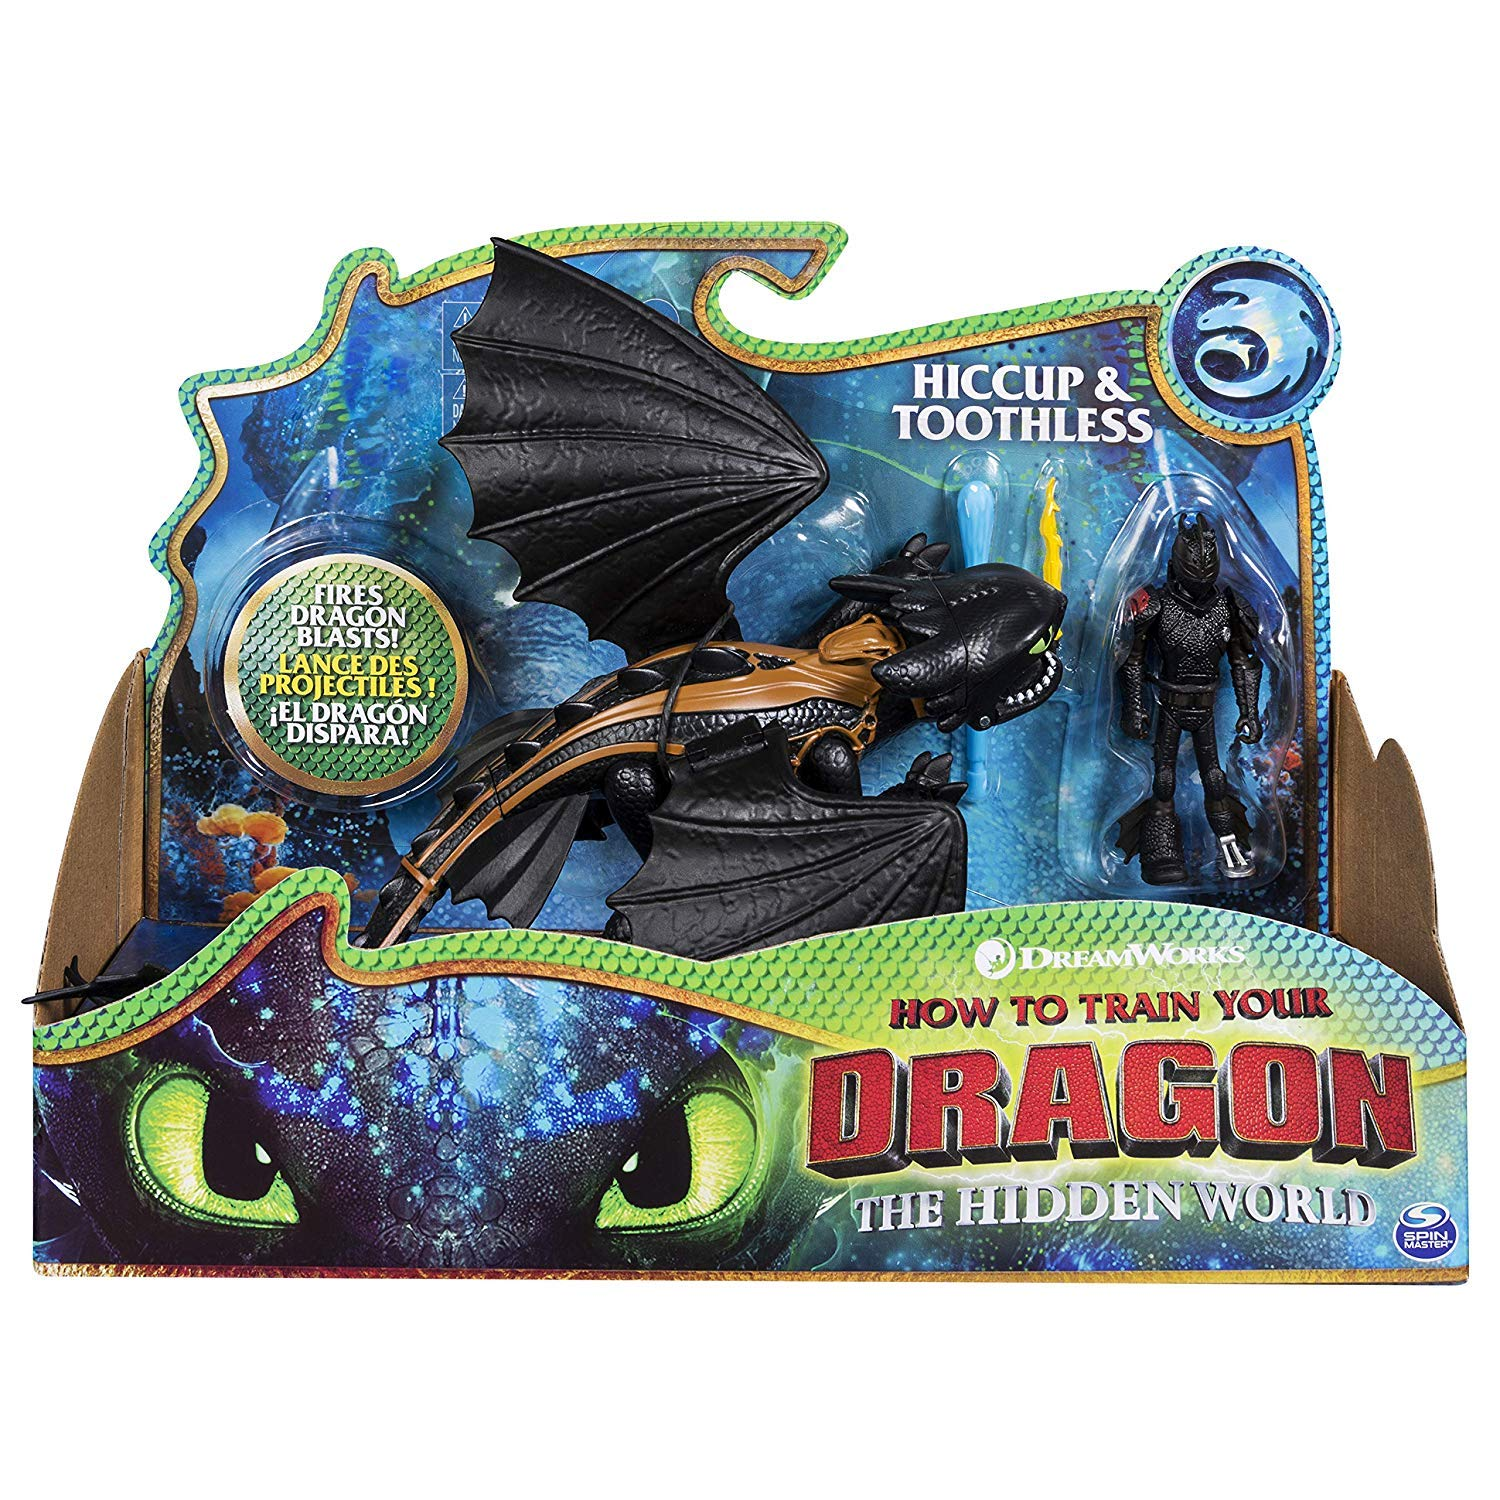 Buy How To Train Your Dragon Toy Dragon And Viking Figure Toothless And Hiccup Toys For Boys 4 Years Above Action Figures Online At Low Prices In India Amazon In